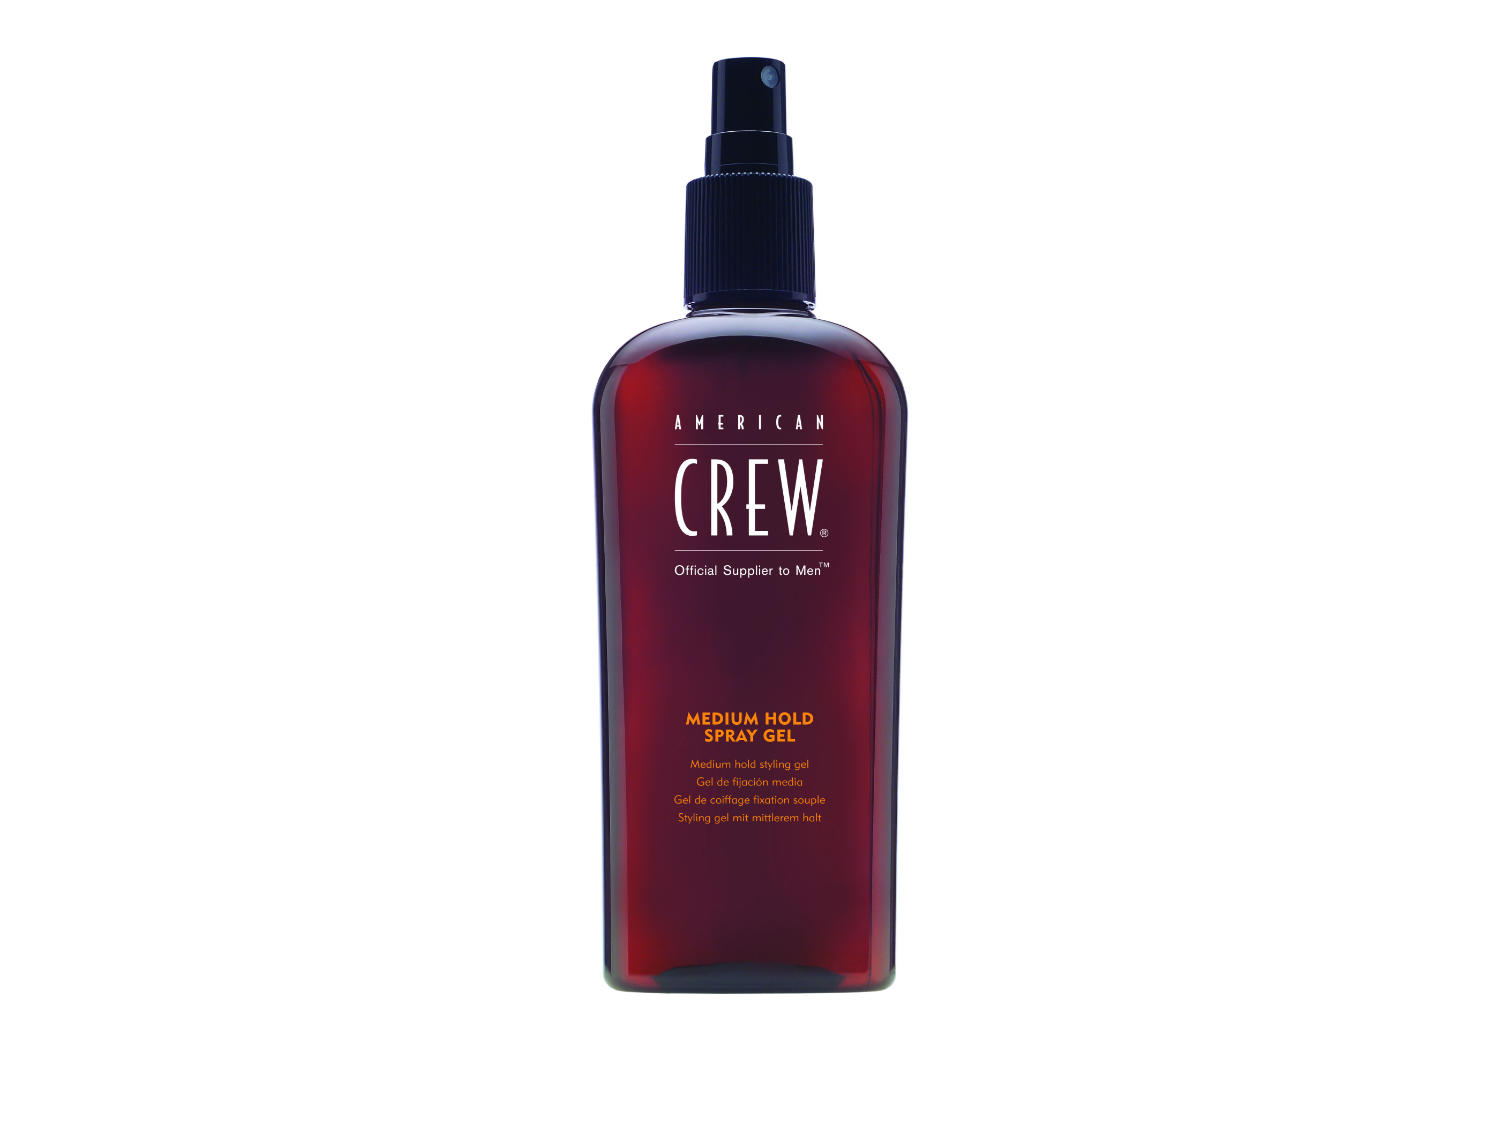 Arma Beauty - American Crew - Medium Hold Spray